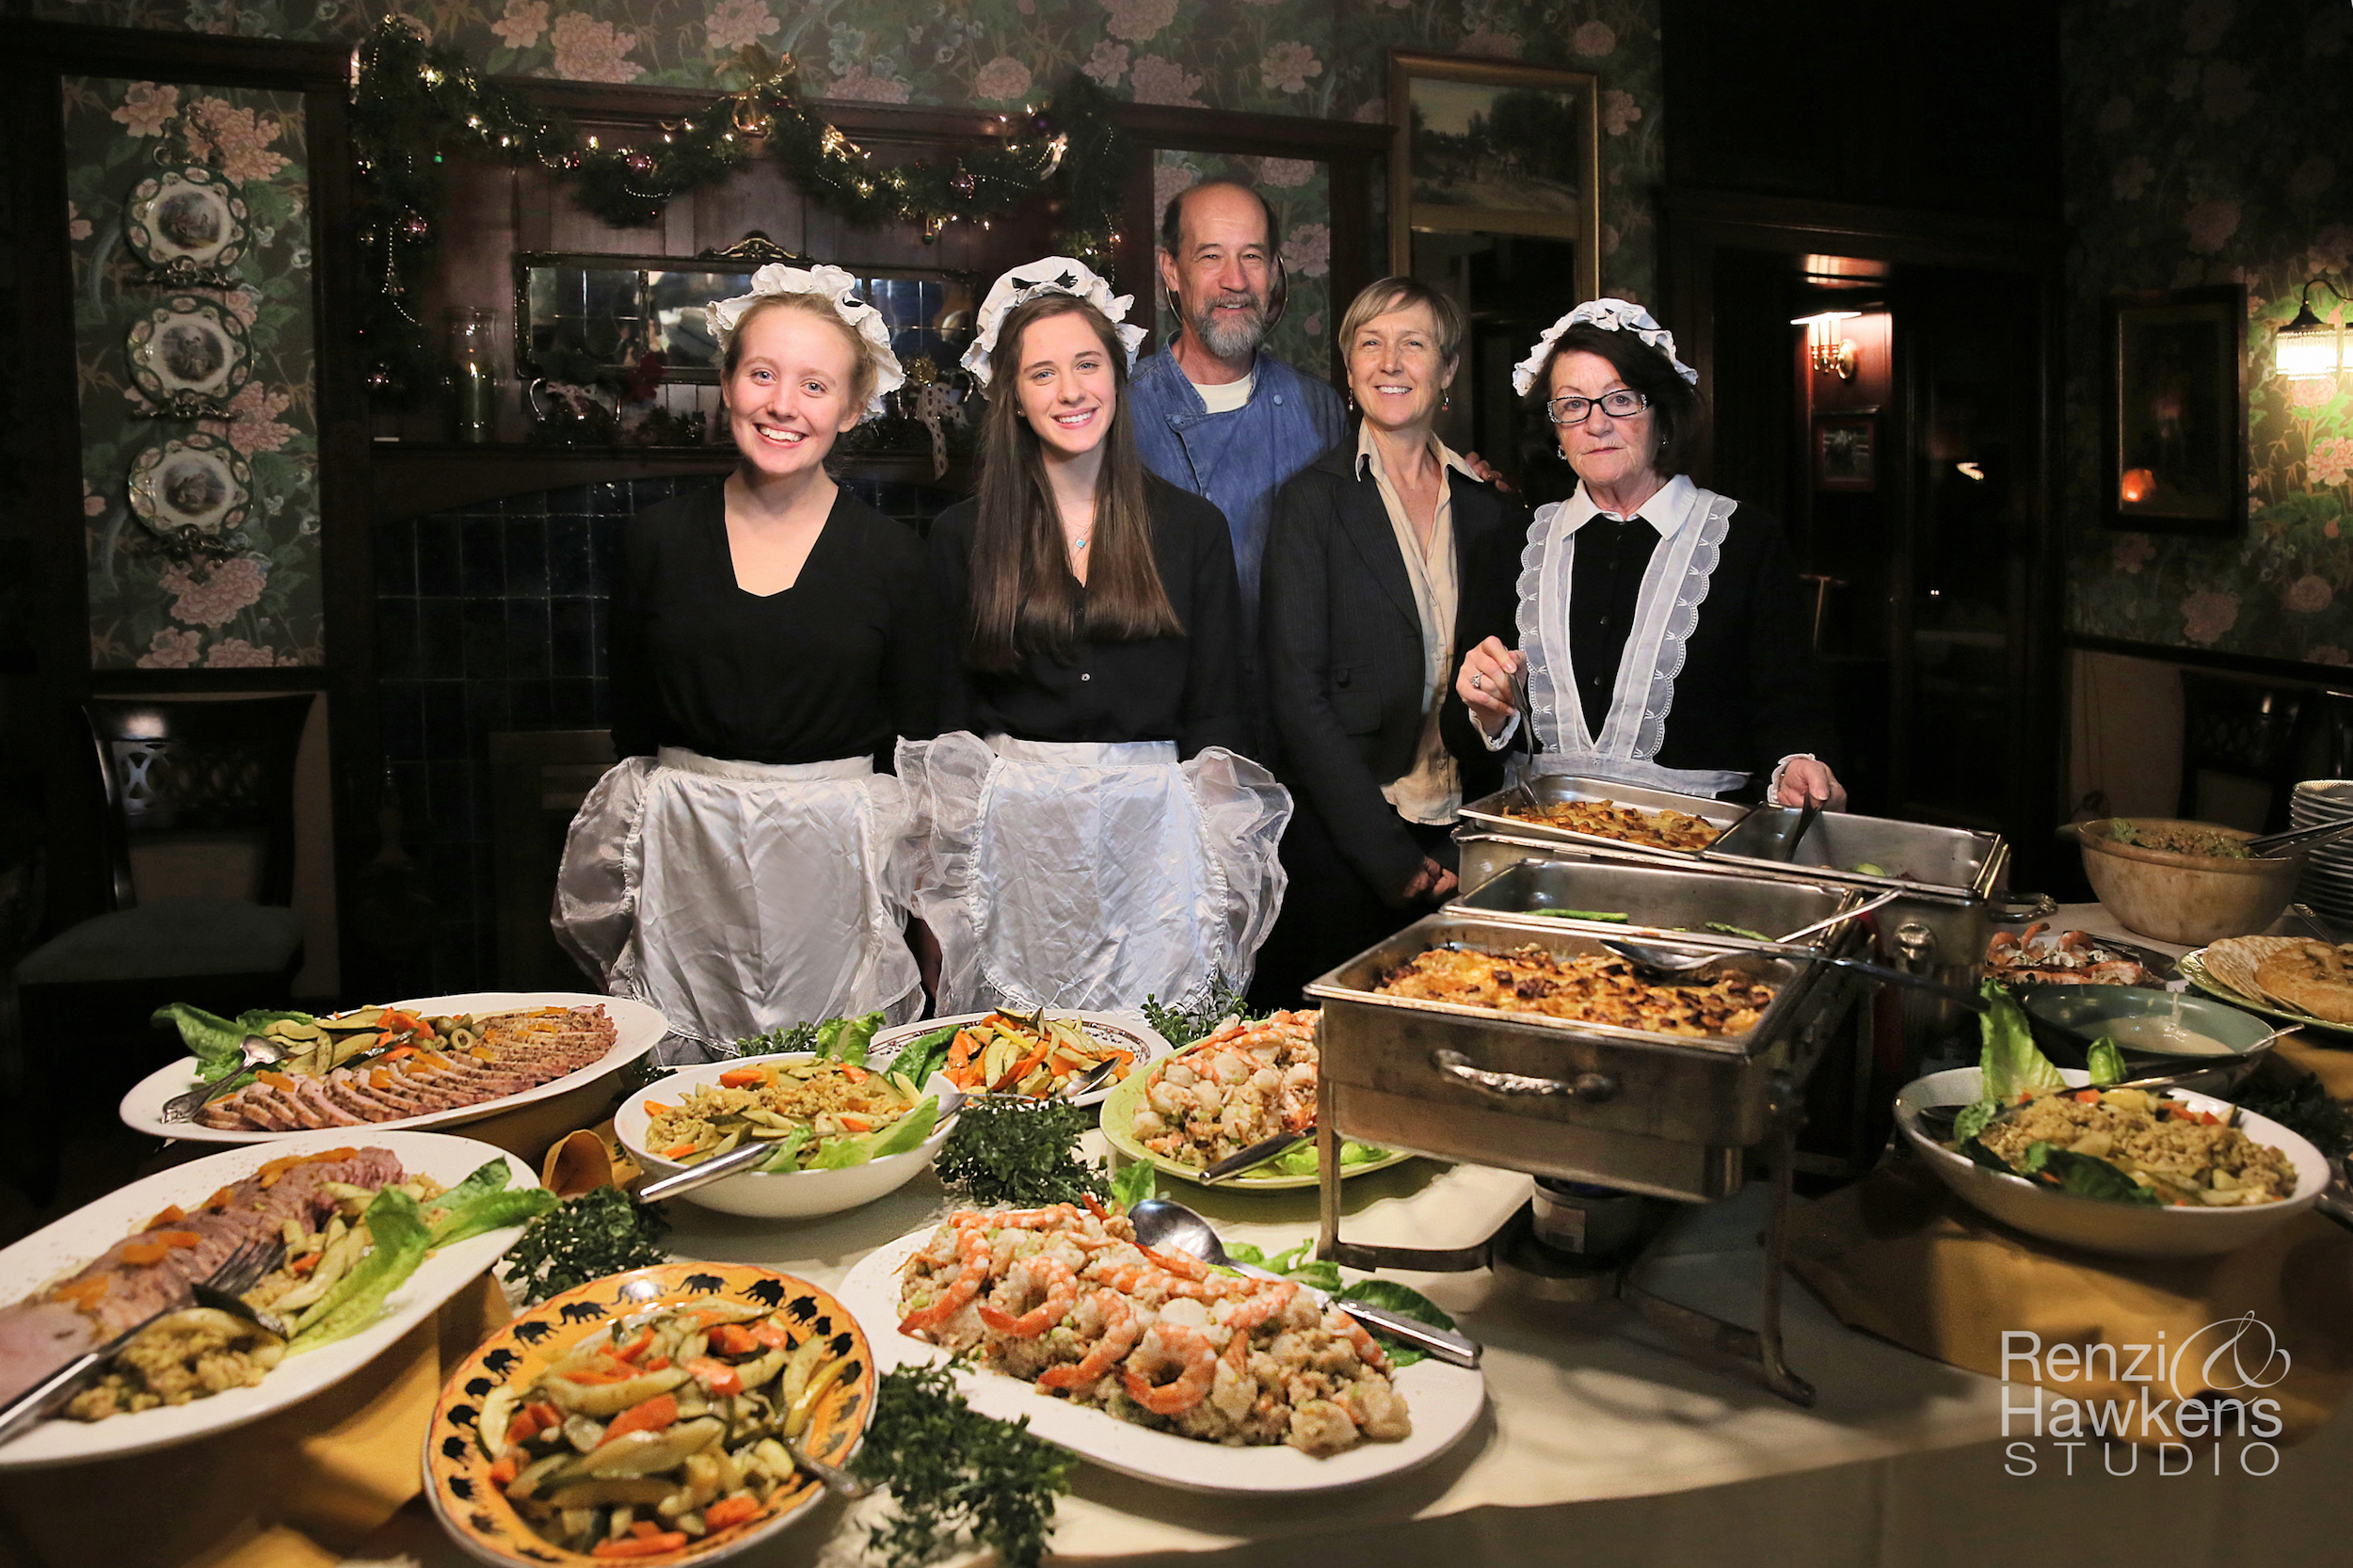 Chef_Gary_Caters_Feast_Wilburton_Inn.jpg